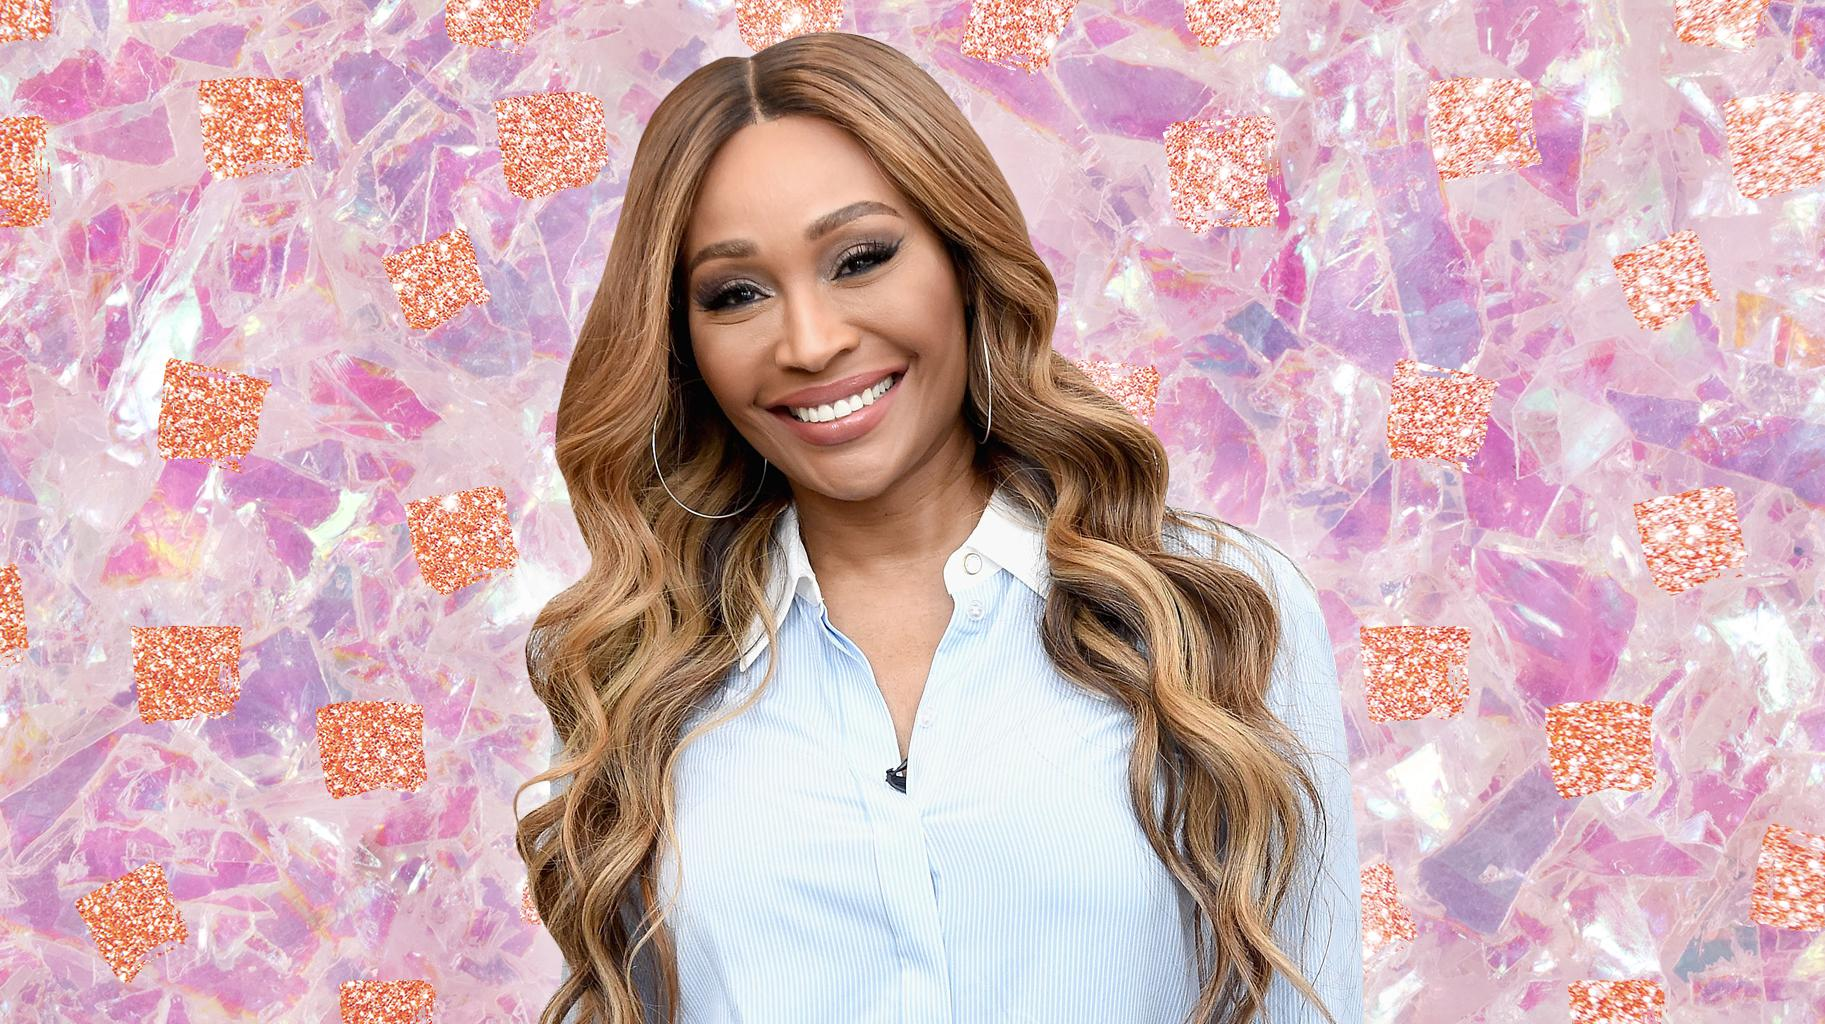 Cynthia Bailey Looks Gorgeous In An All-Black Outfit, Despite Claims From Haters Saying She Gained Weight - See Her Pics